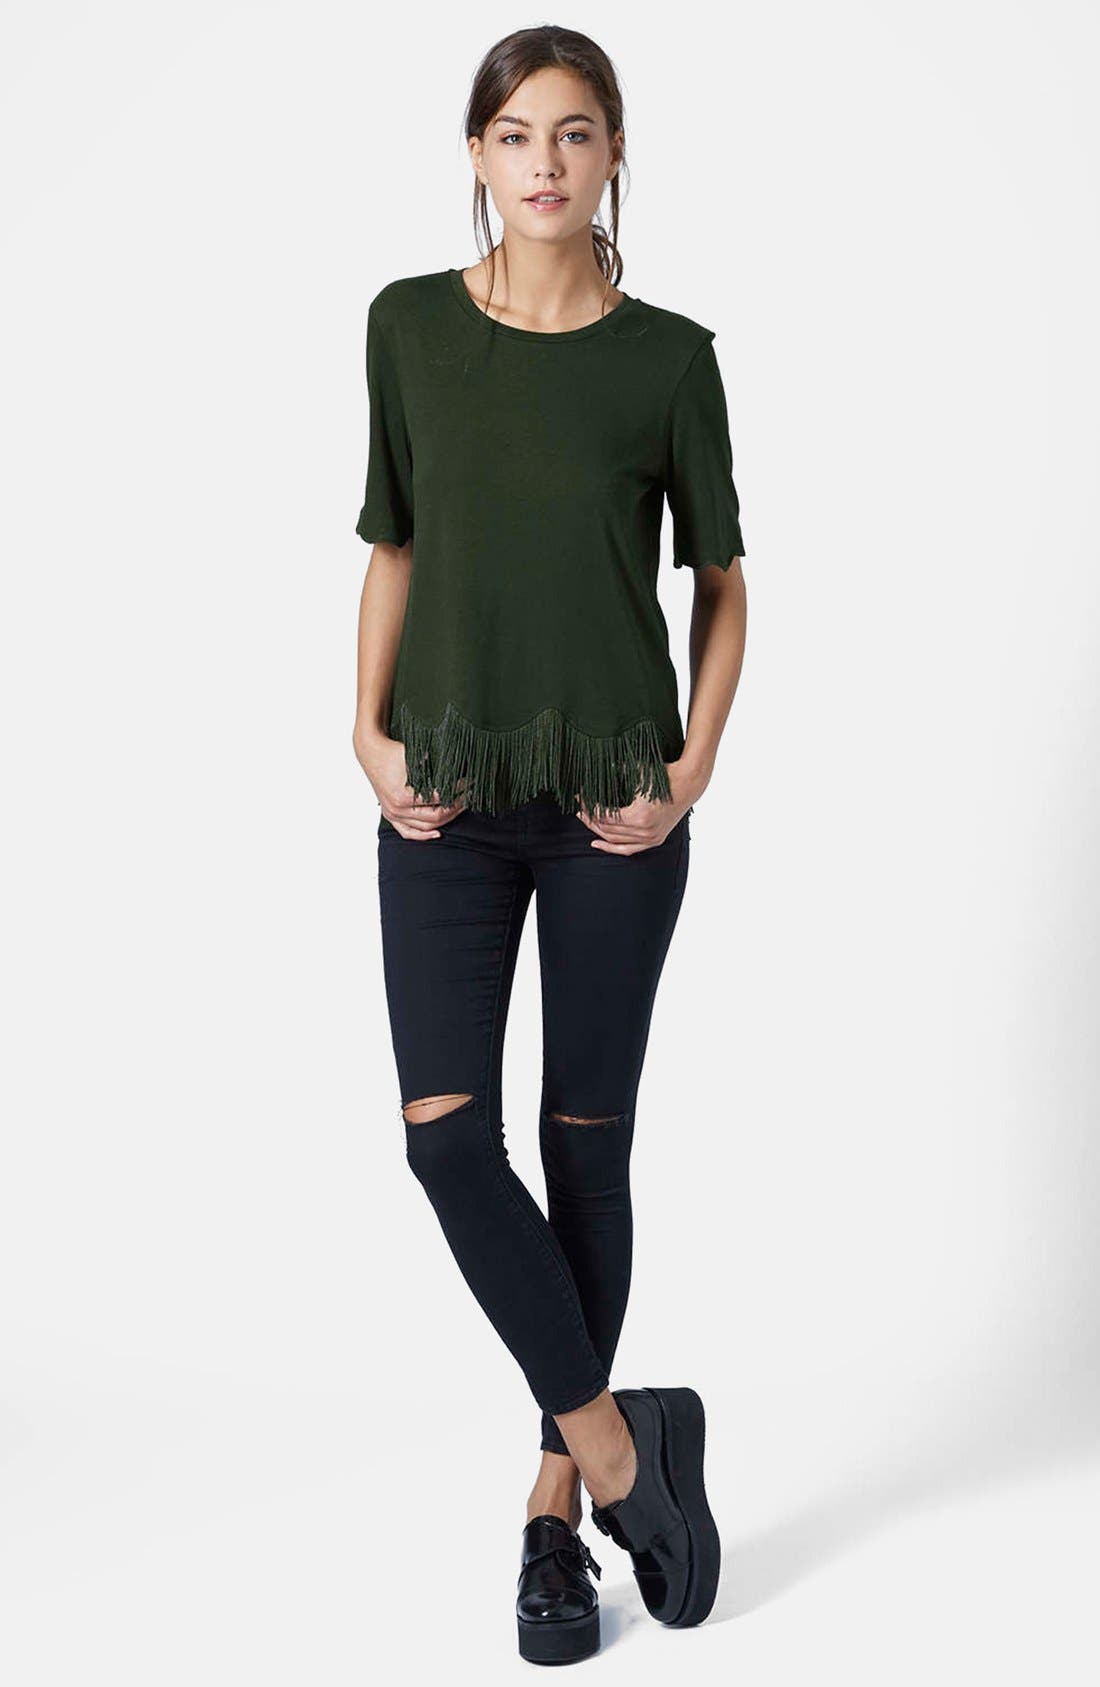 TOPSHOP, Fringe Scallop Tee, Alternate thumbnail 3, color, 301